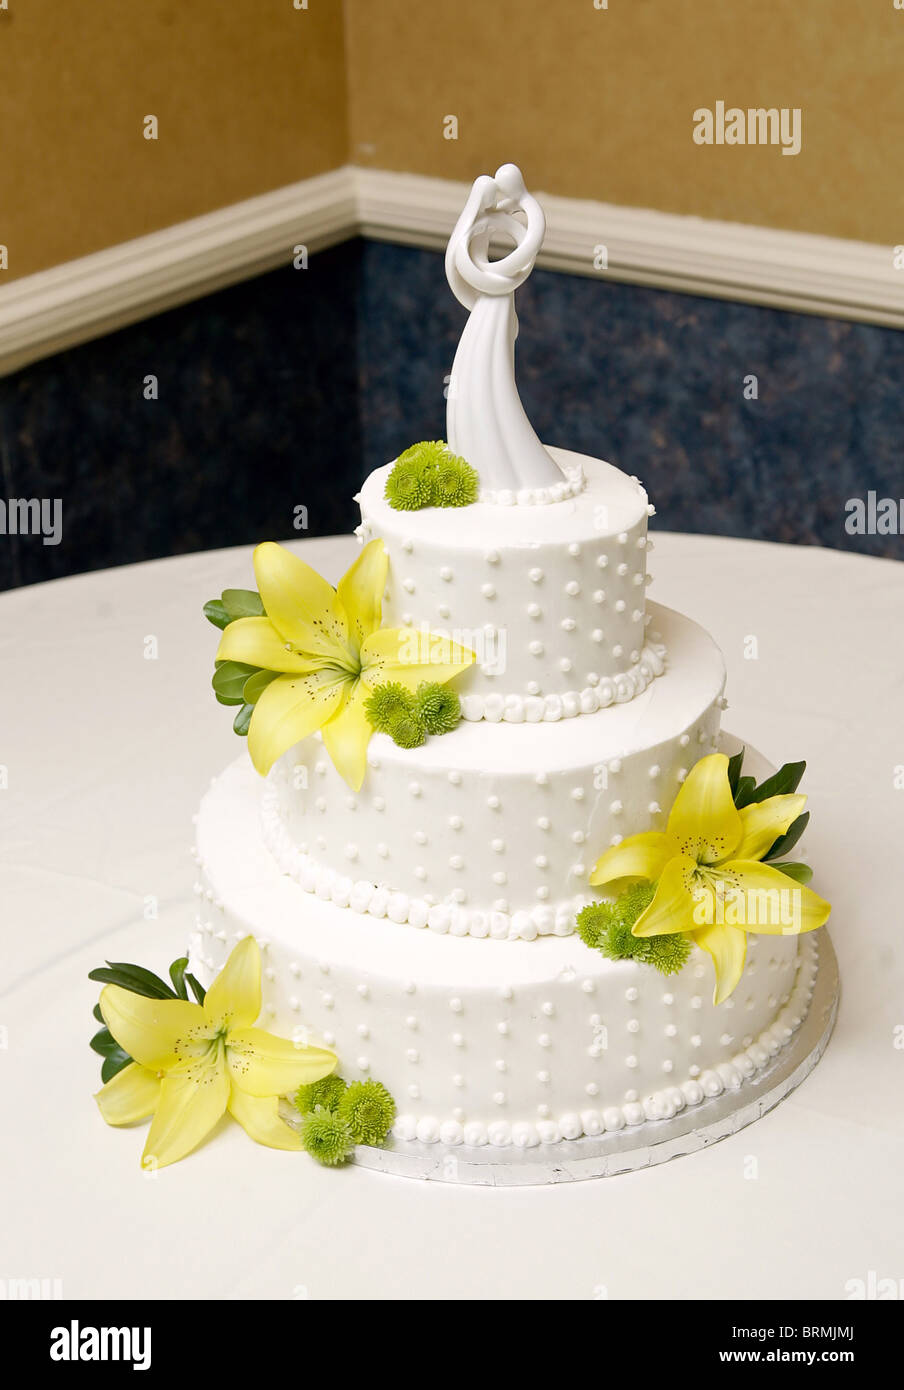 Three Layer Wedding Cake Stock Photos & Three Layer Wedding Cake ...